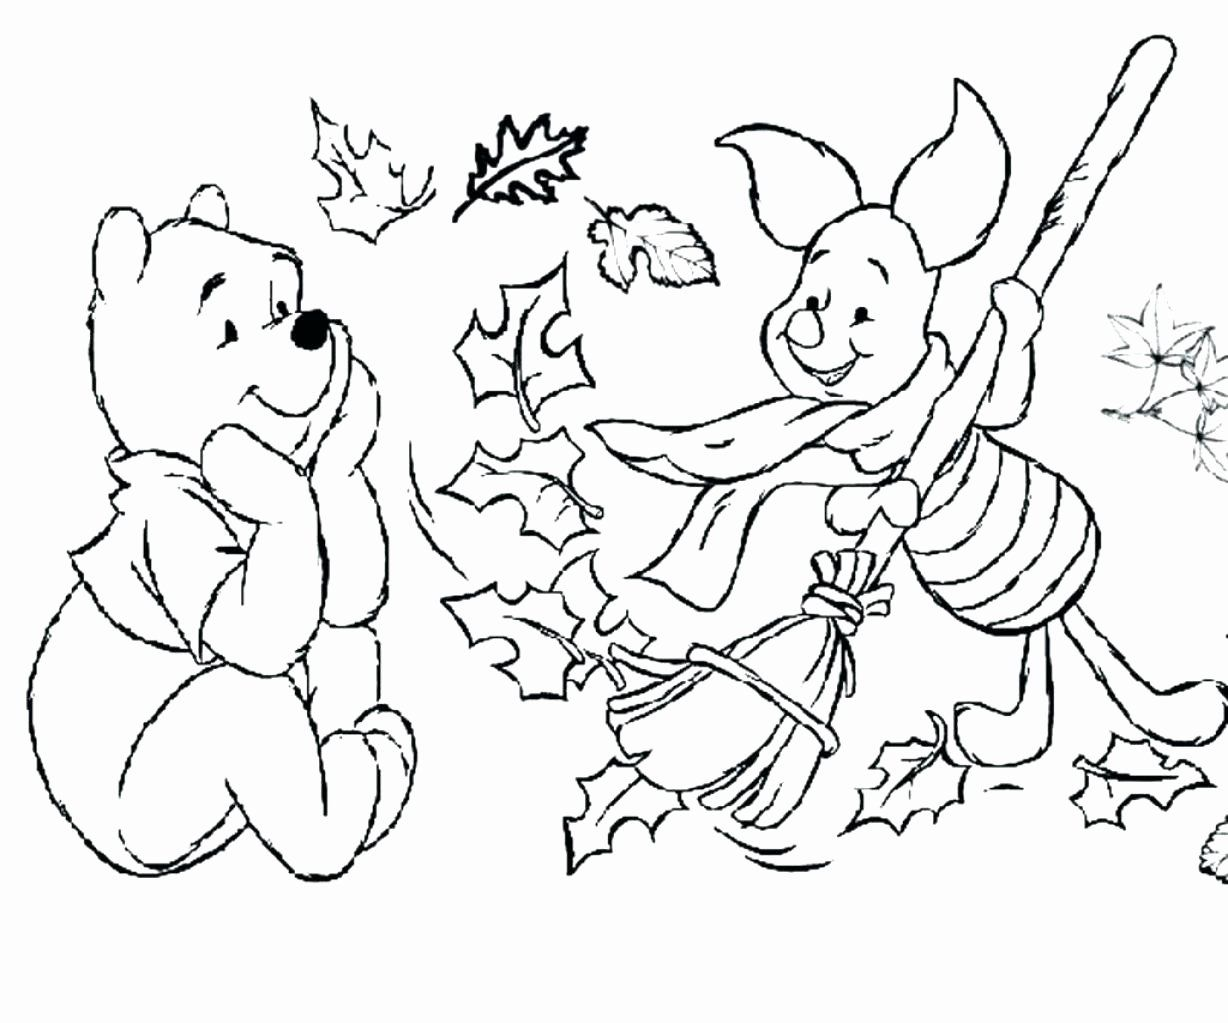 Printable Cartoon Characters Coloring Pages Unique Free Printable Fleur De Lis Coloring Pages Axialsheet